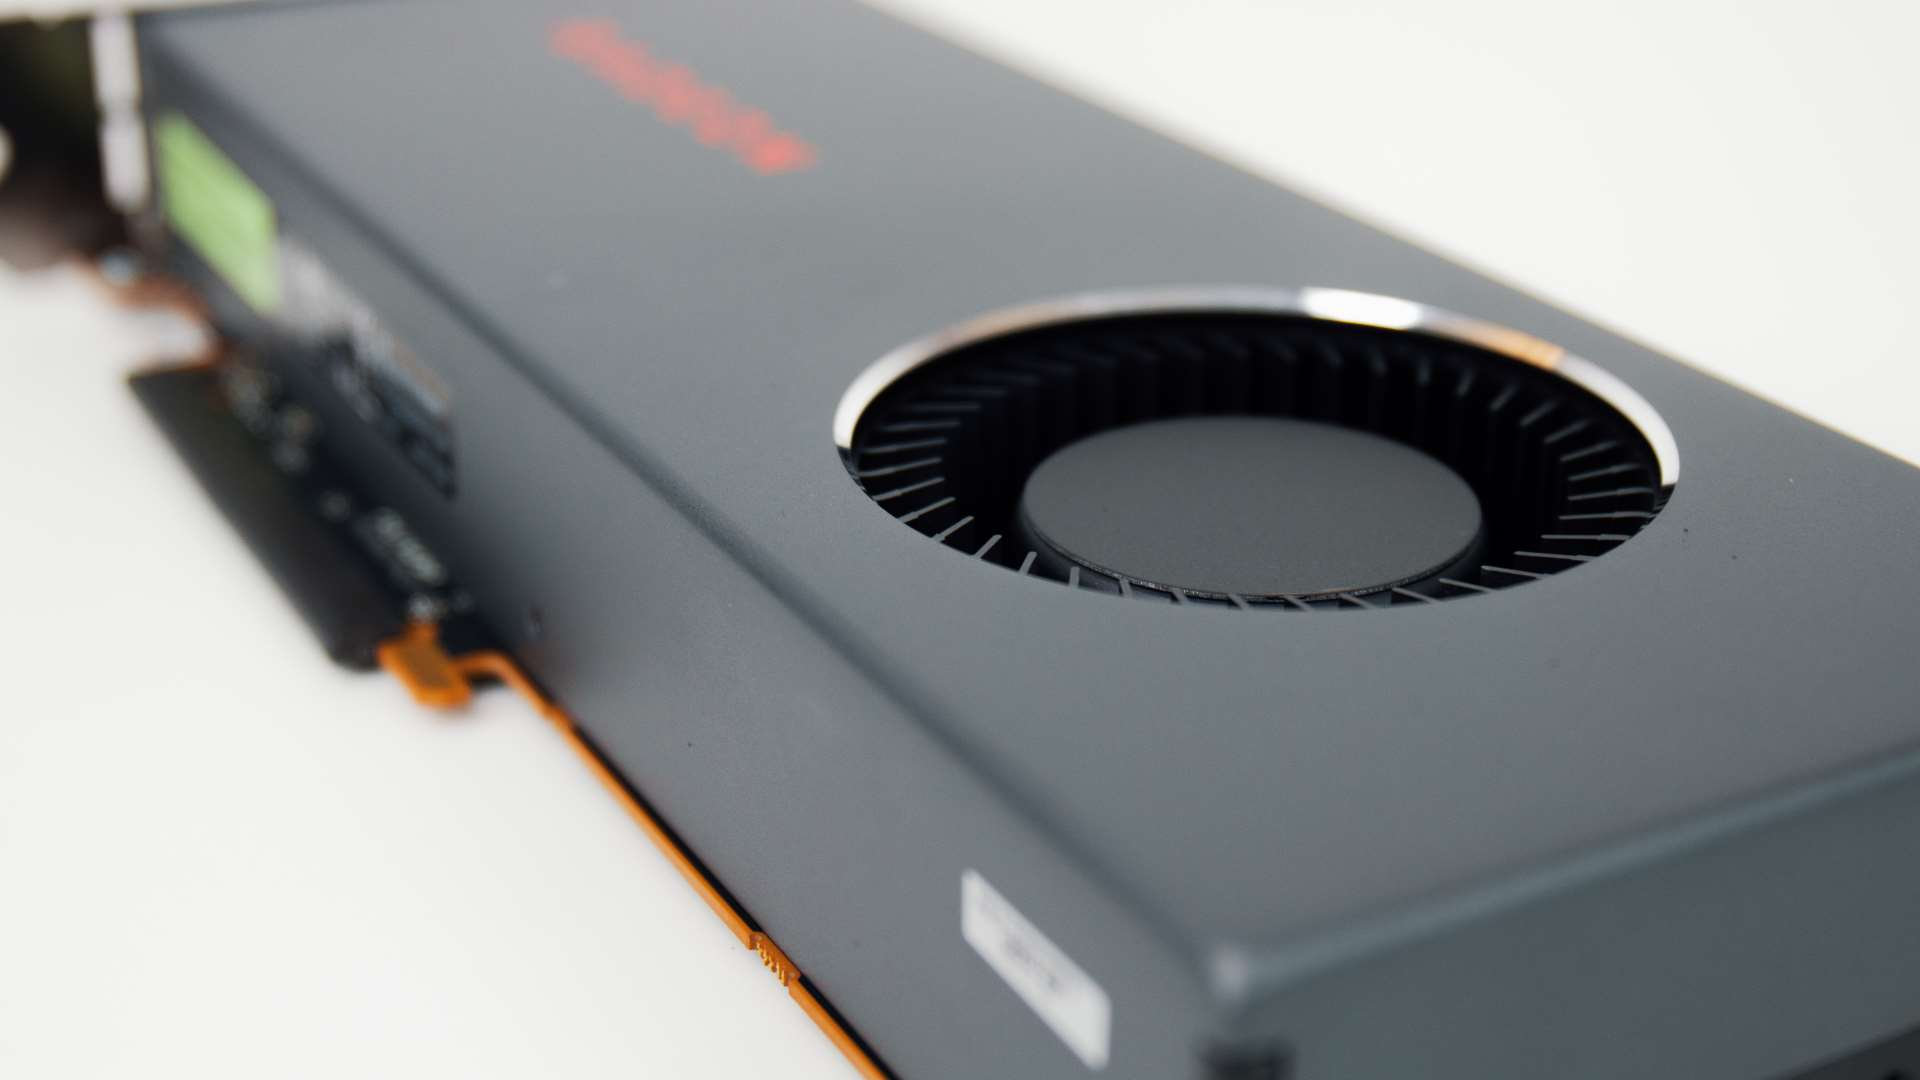 AMD Radeon RX 5700 XT review: priced against Nvidia's RTX 2060 Super